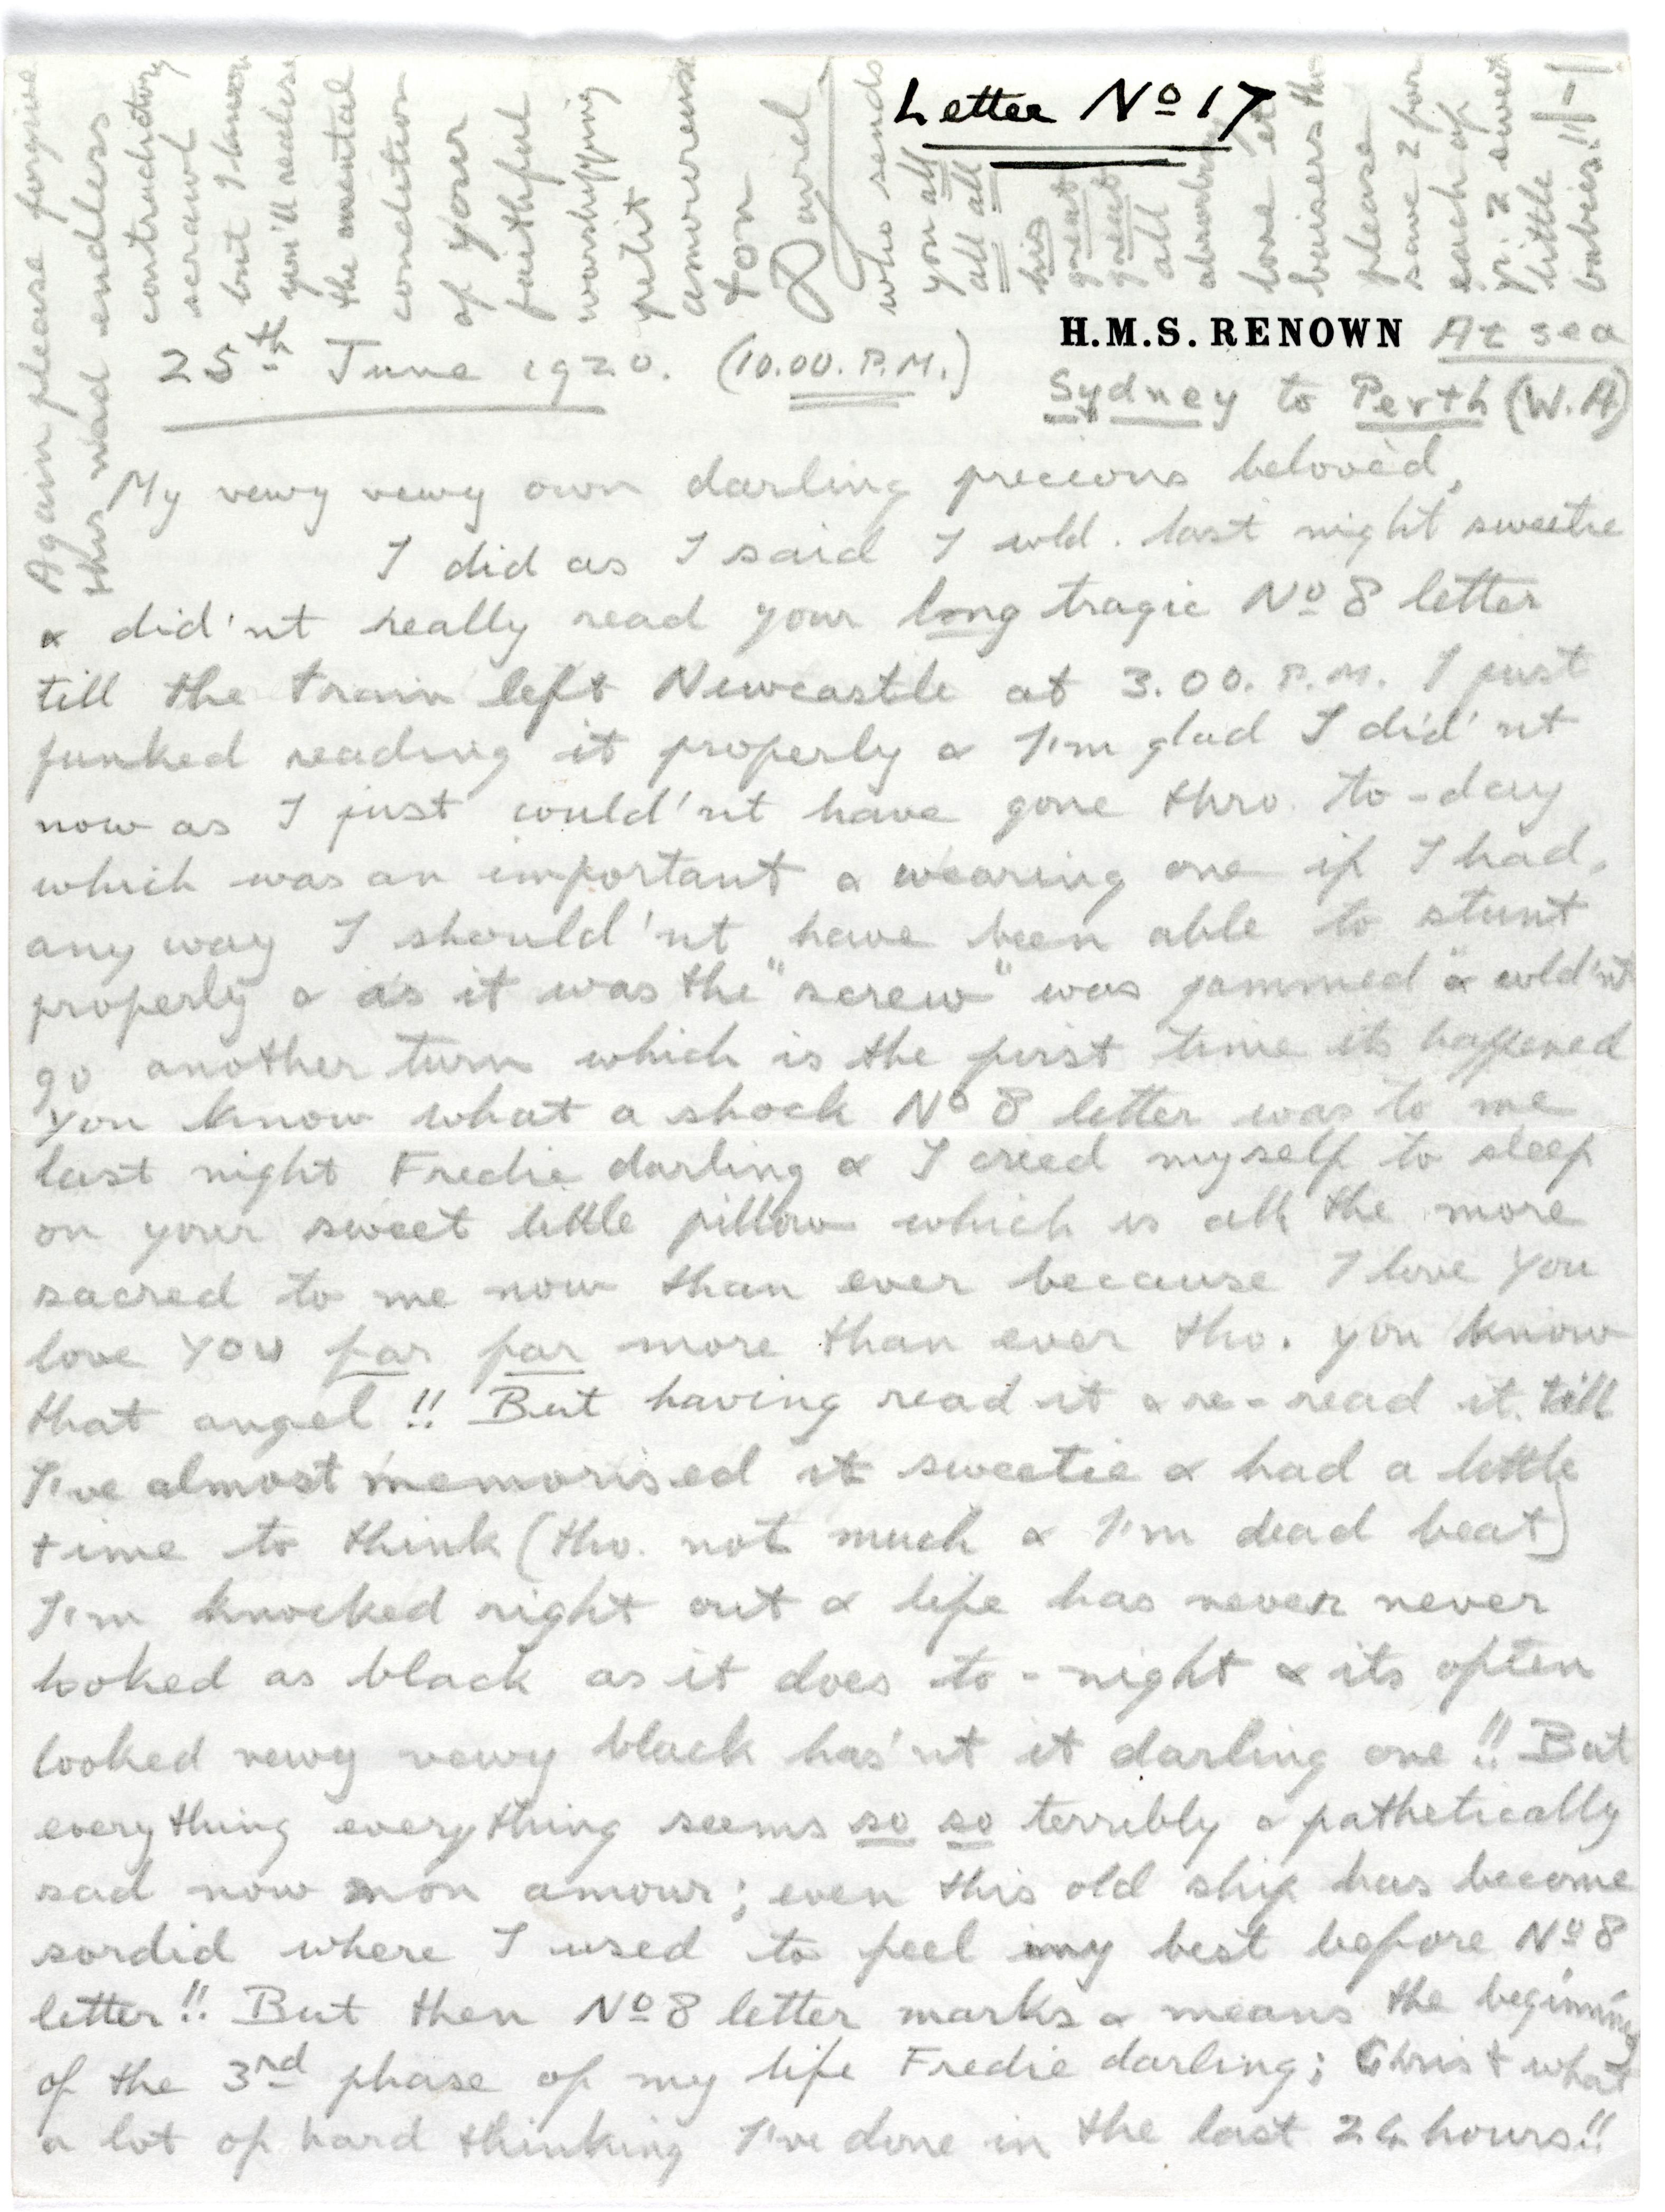 Image of a letter from Prince Edward to Freda